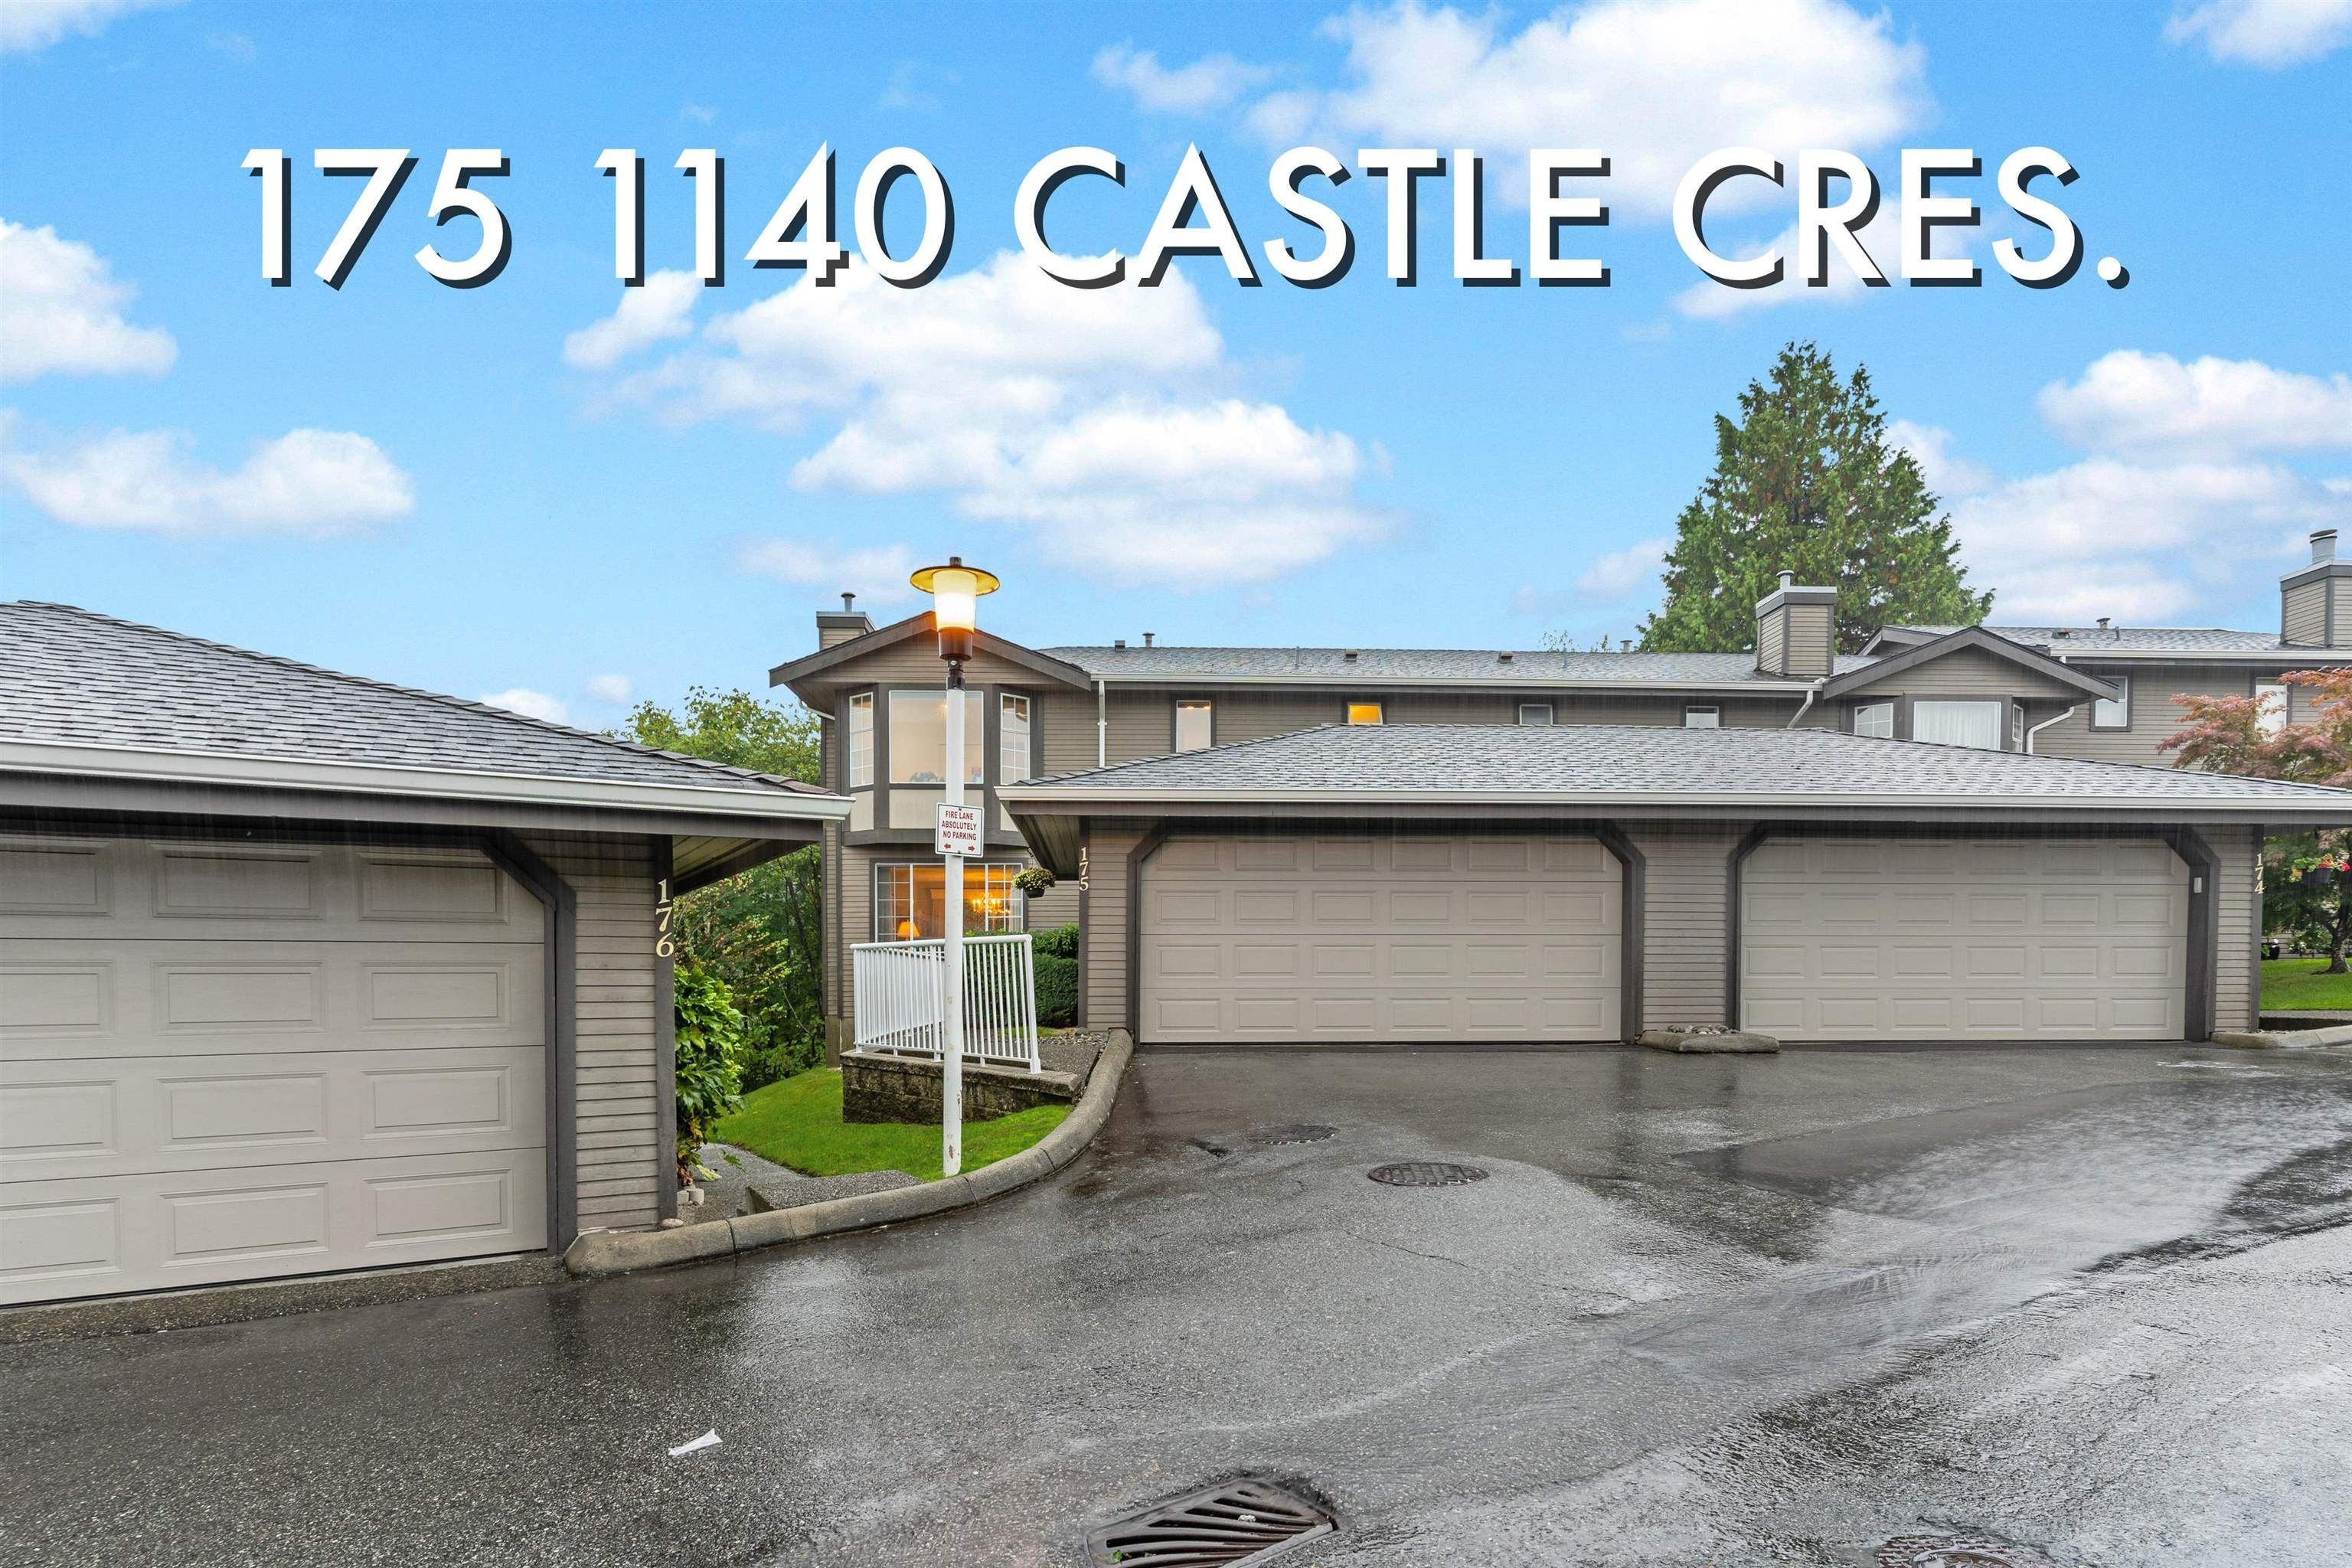 """Main Photo: 175 1140 CASTLE Crescent in Port Coquitlam: Citadel PQ Townhouse for sale in """"The Uplands"""" : MLS®# R2619994"""